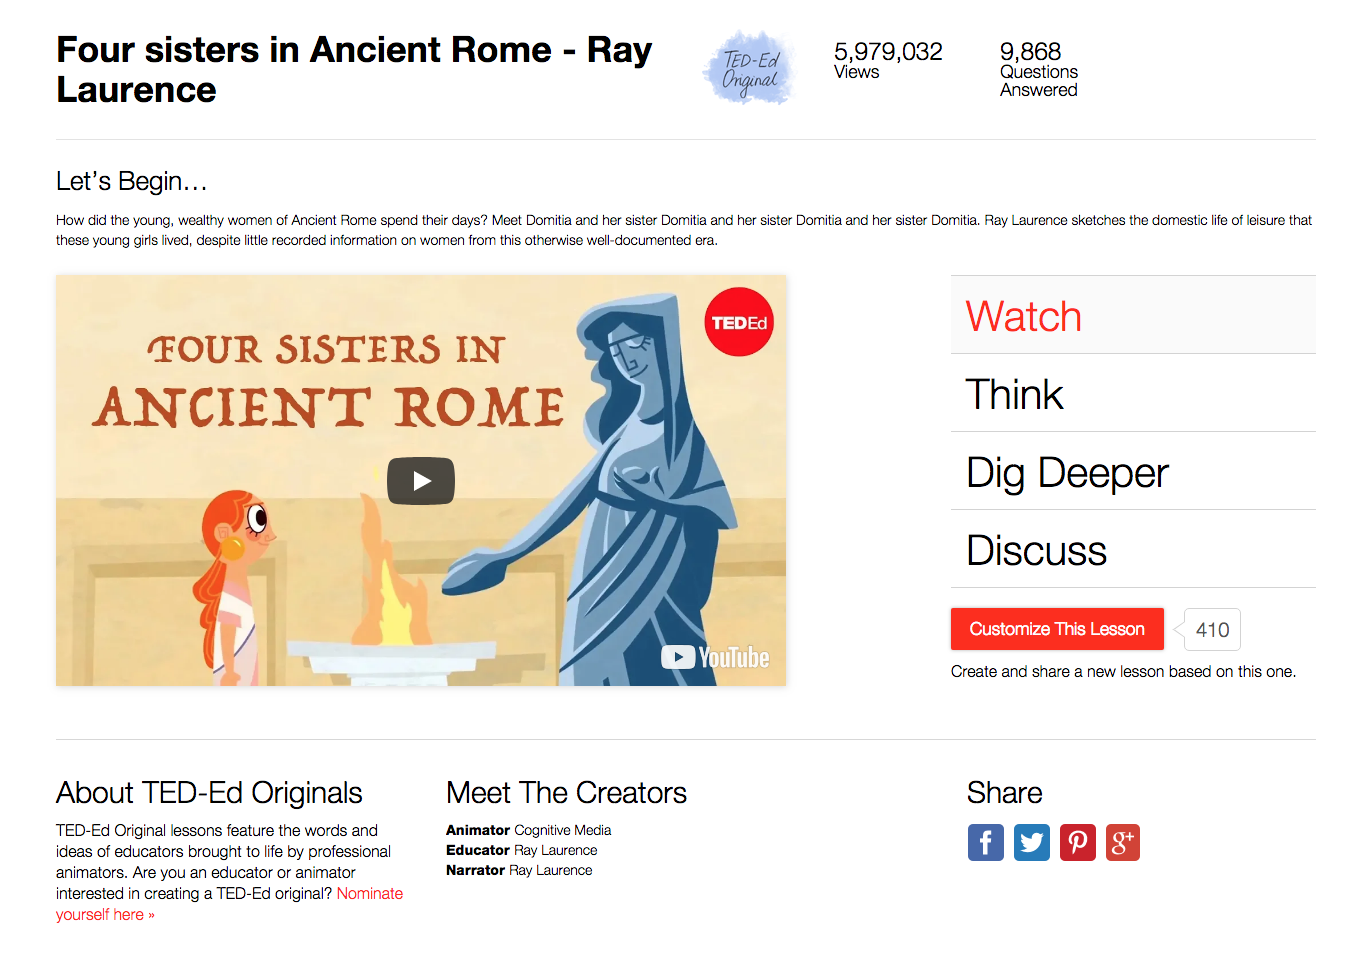 Four Sisters in Ancient Rome Video